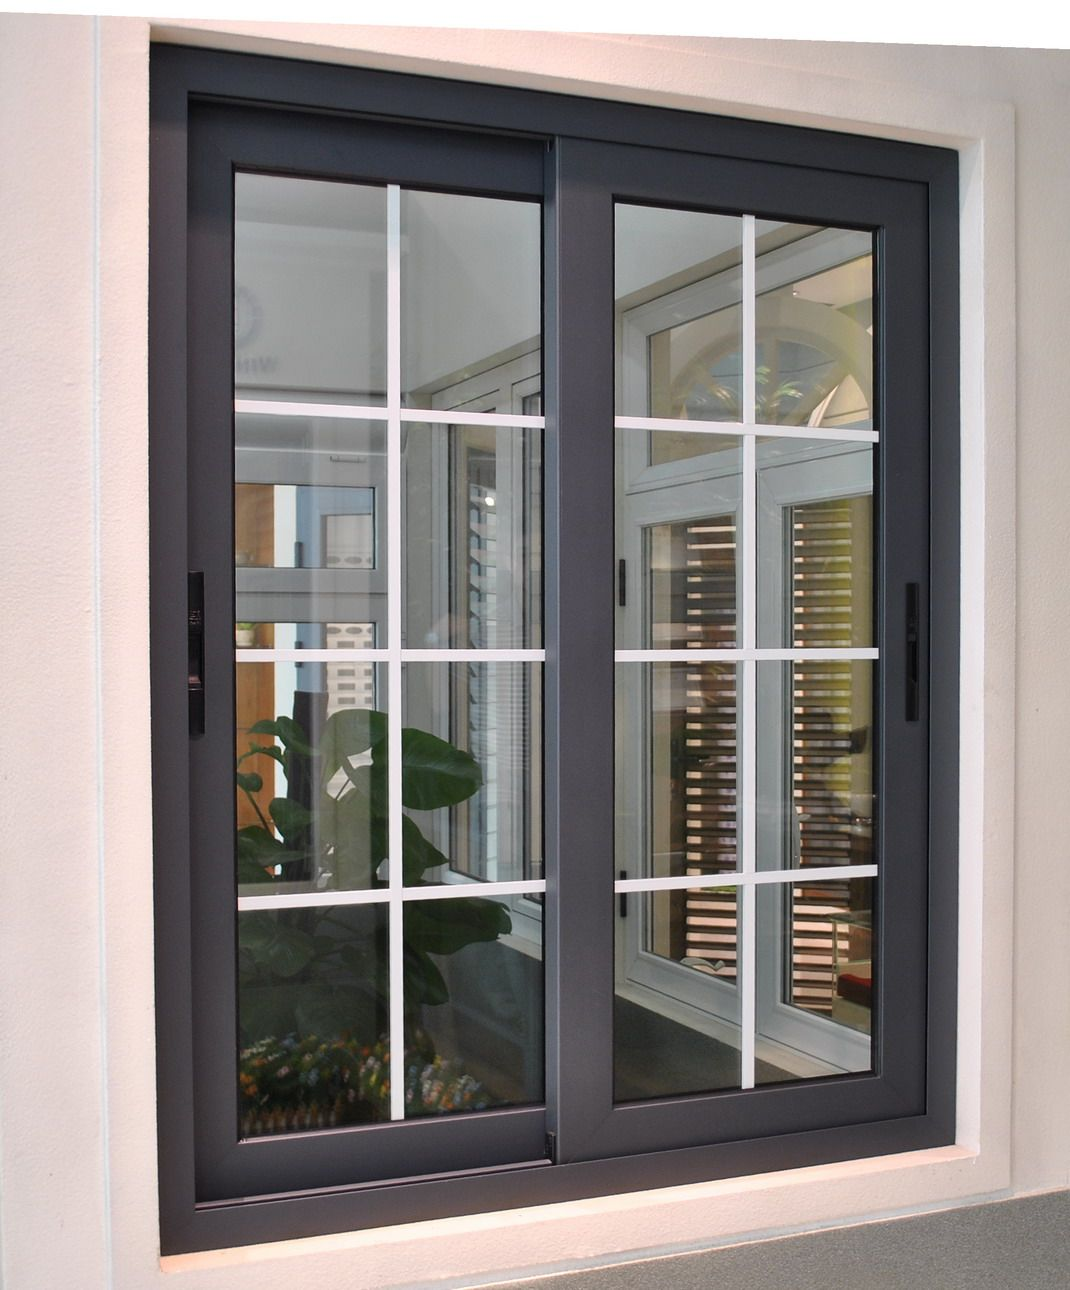 slider windows windows - Google Search | Puerta | Pinterest ...